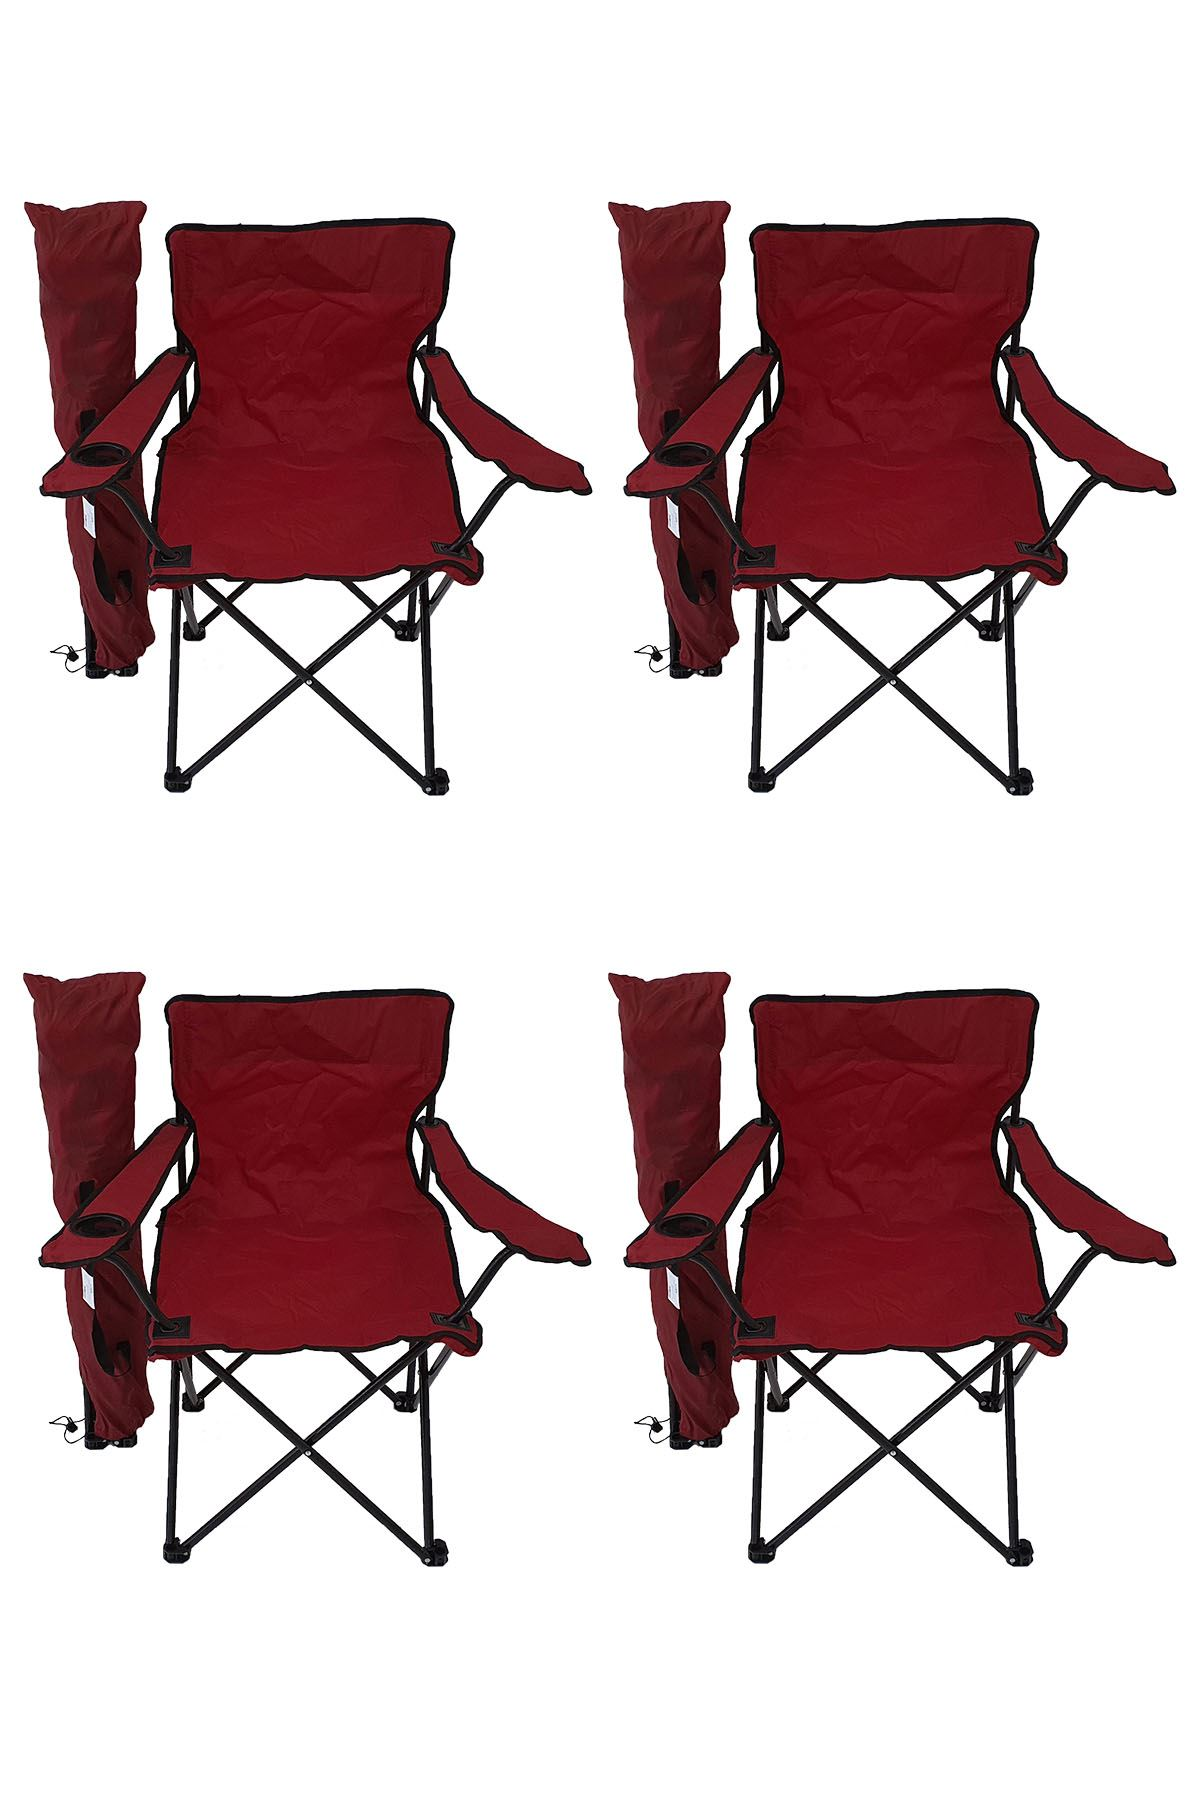 Bofigo 4 Pcs Camping Chair Picnic Chair Folding Chair Camping Chair with Carrying Bag Red